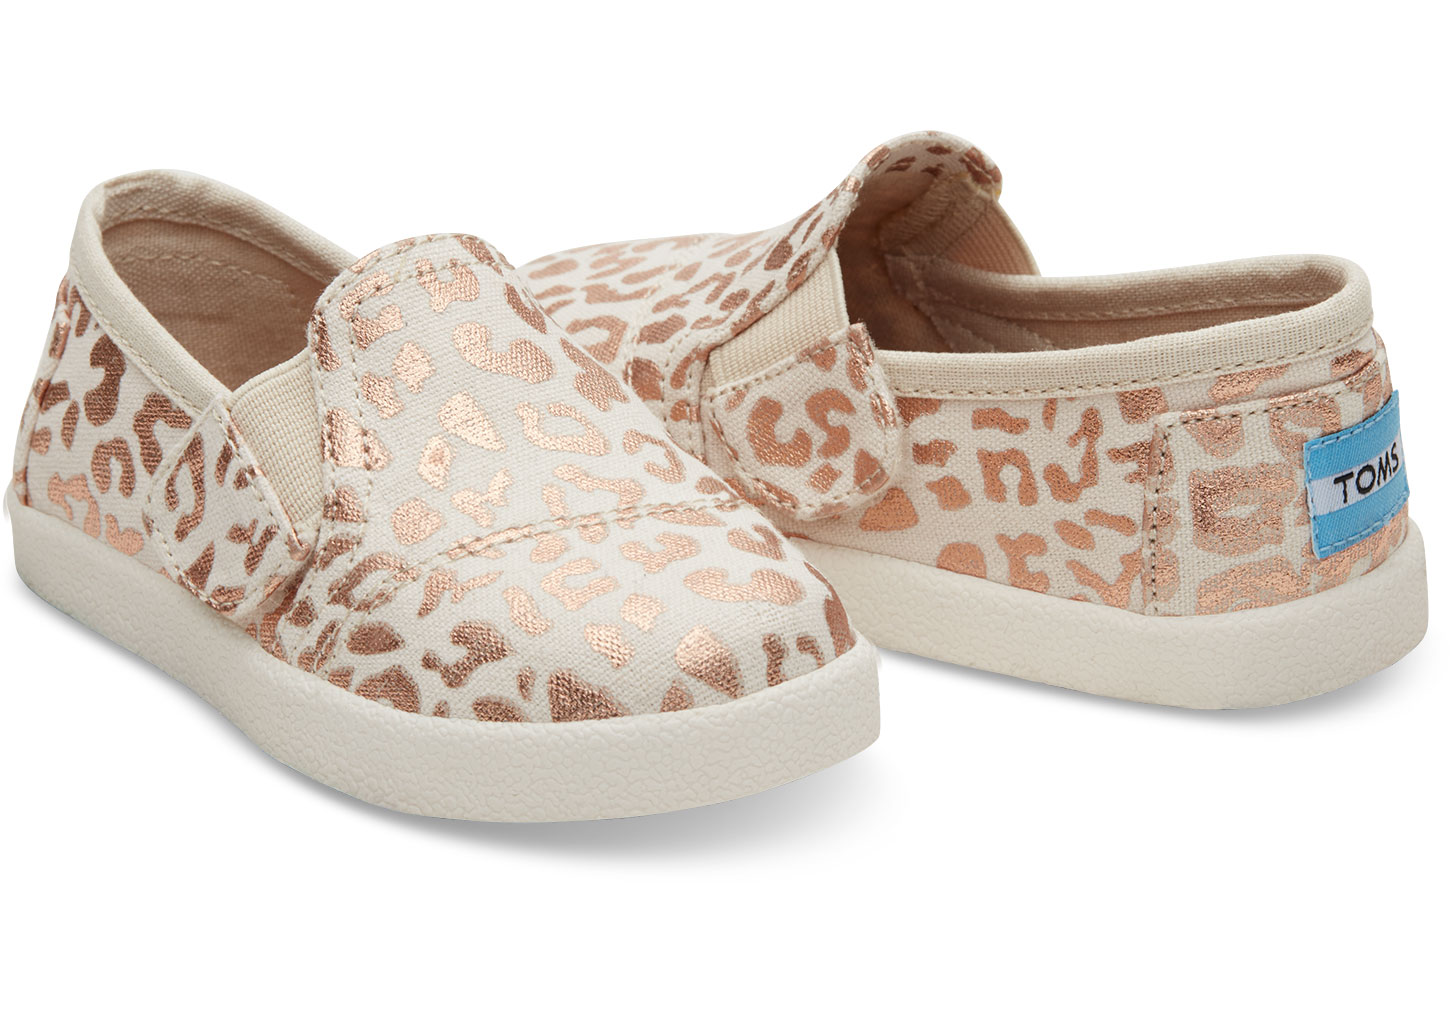 f15a8f7902b Love-it - Toms Tiny Natural Cheetah Foil Avalon Slipons